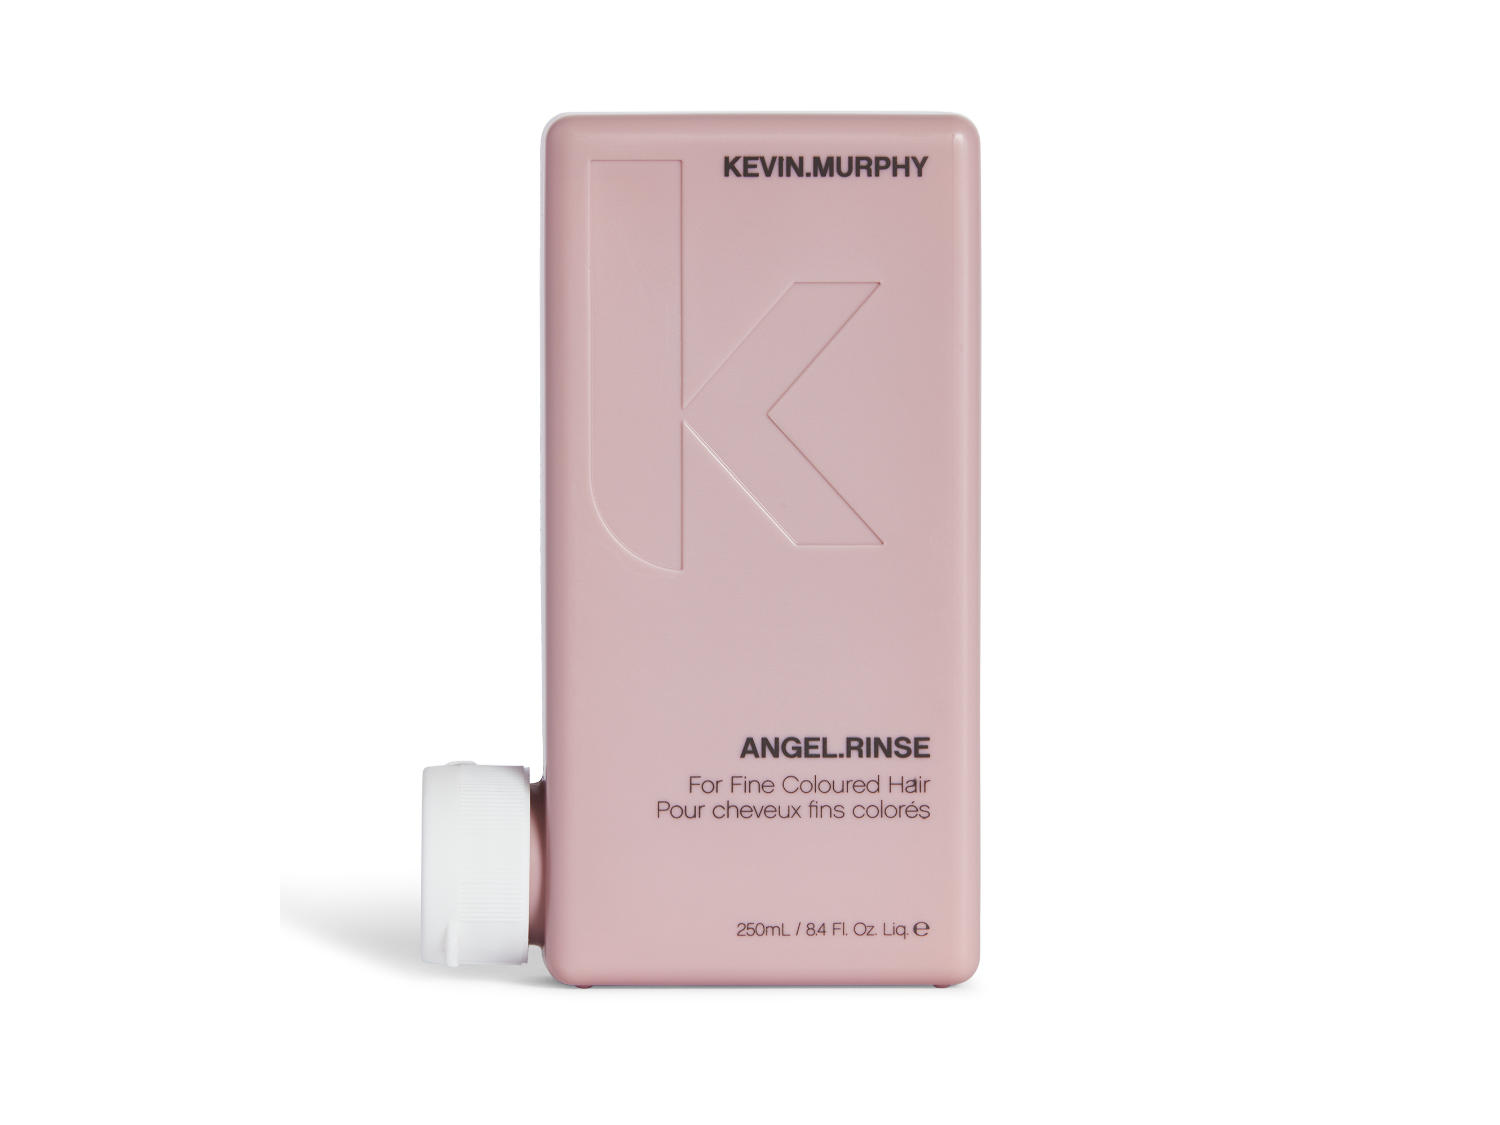 Arma Beauty - Kevin Murphy - ANGEL.RINSE